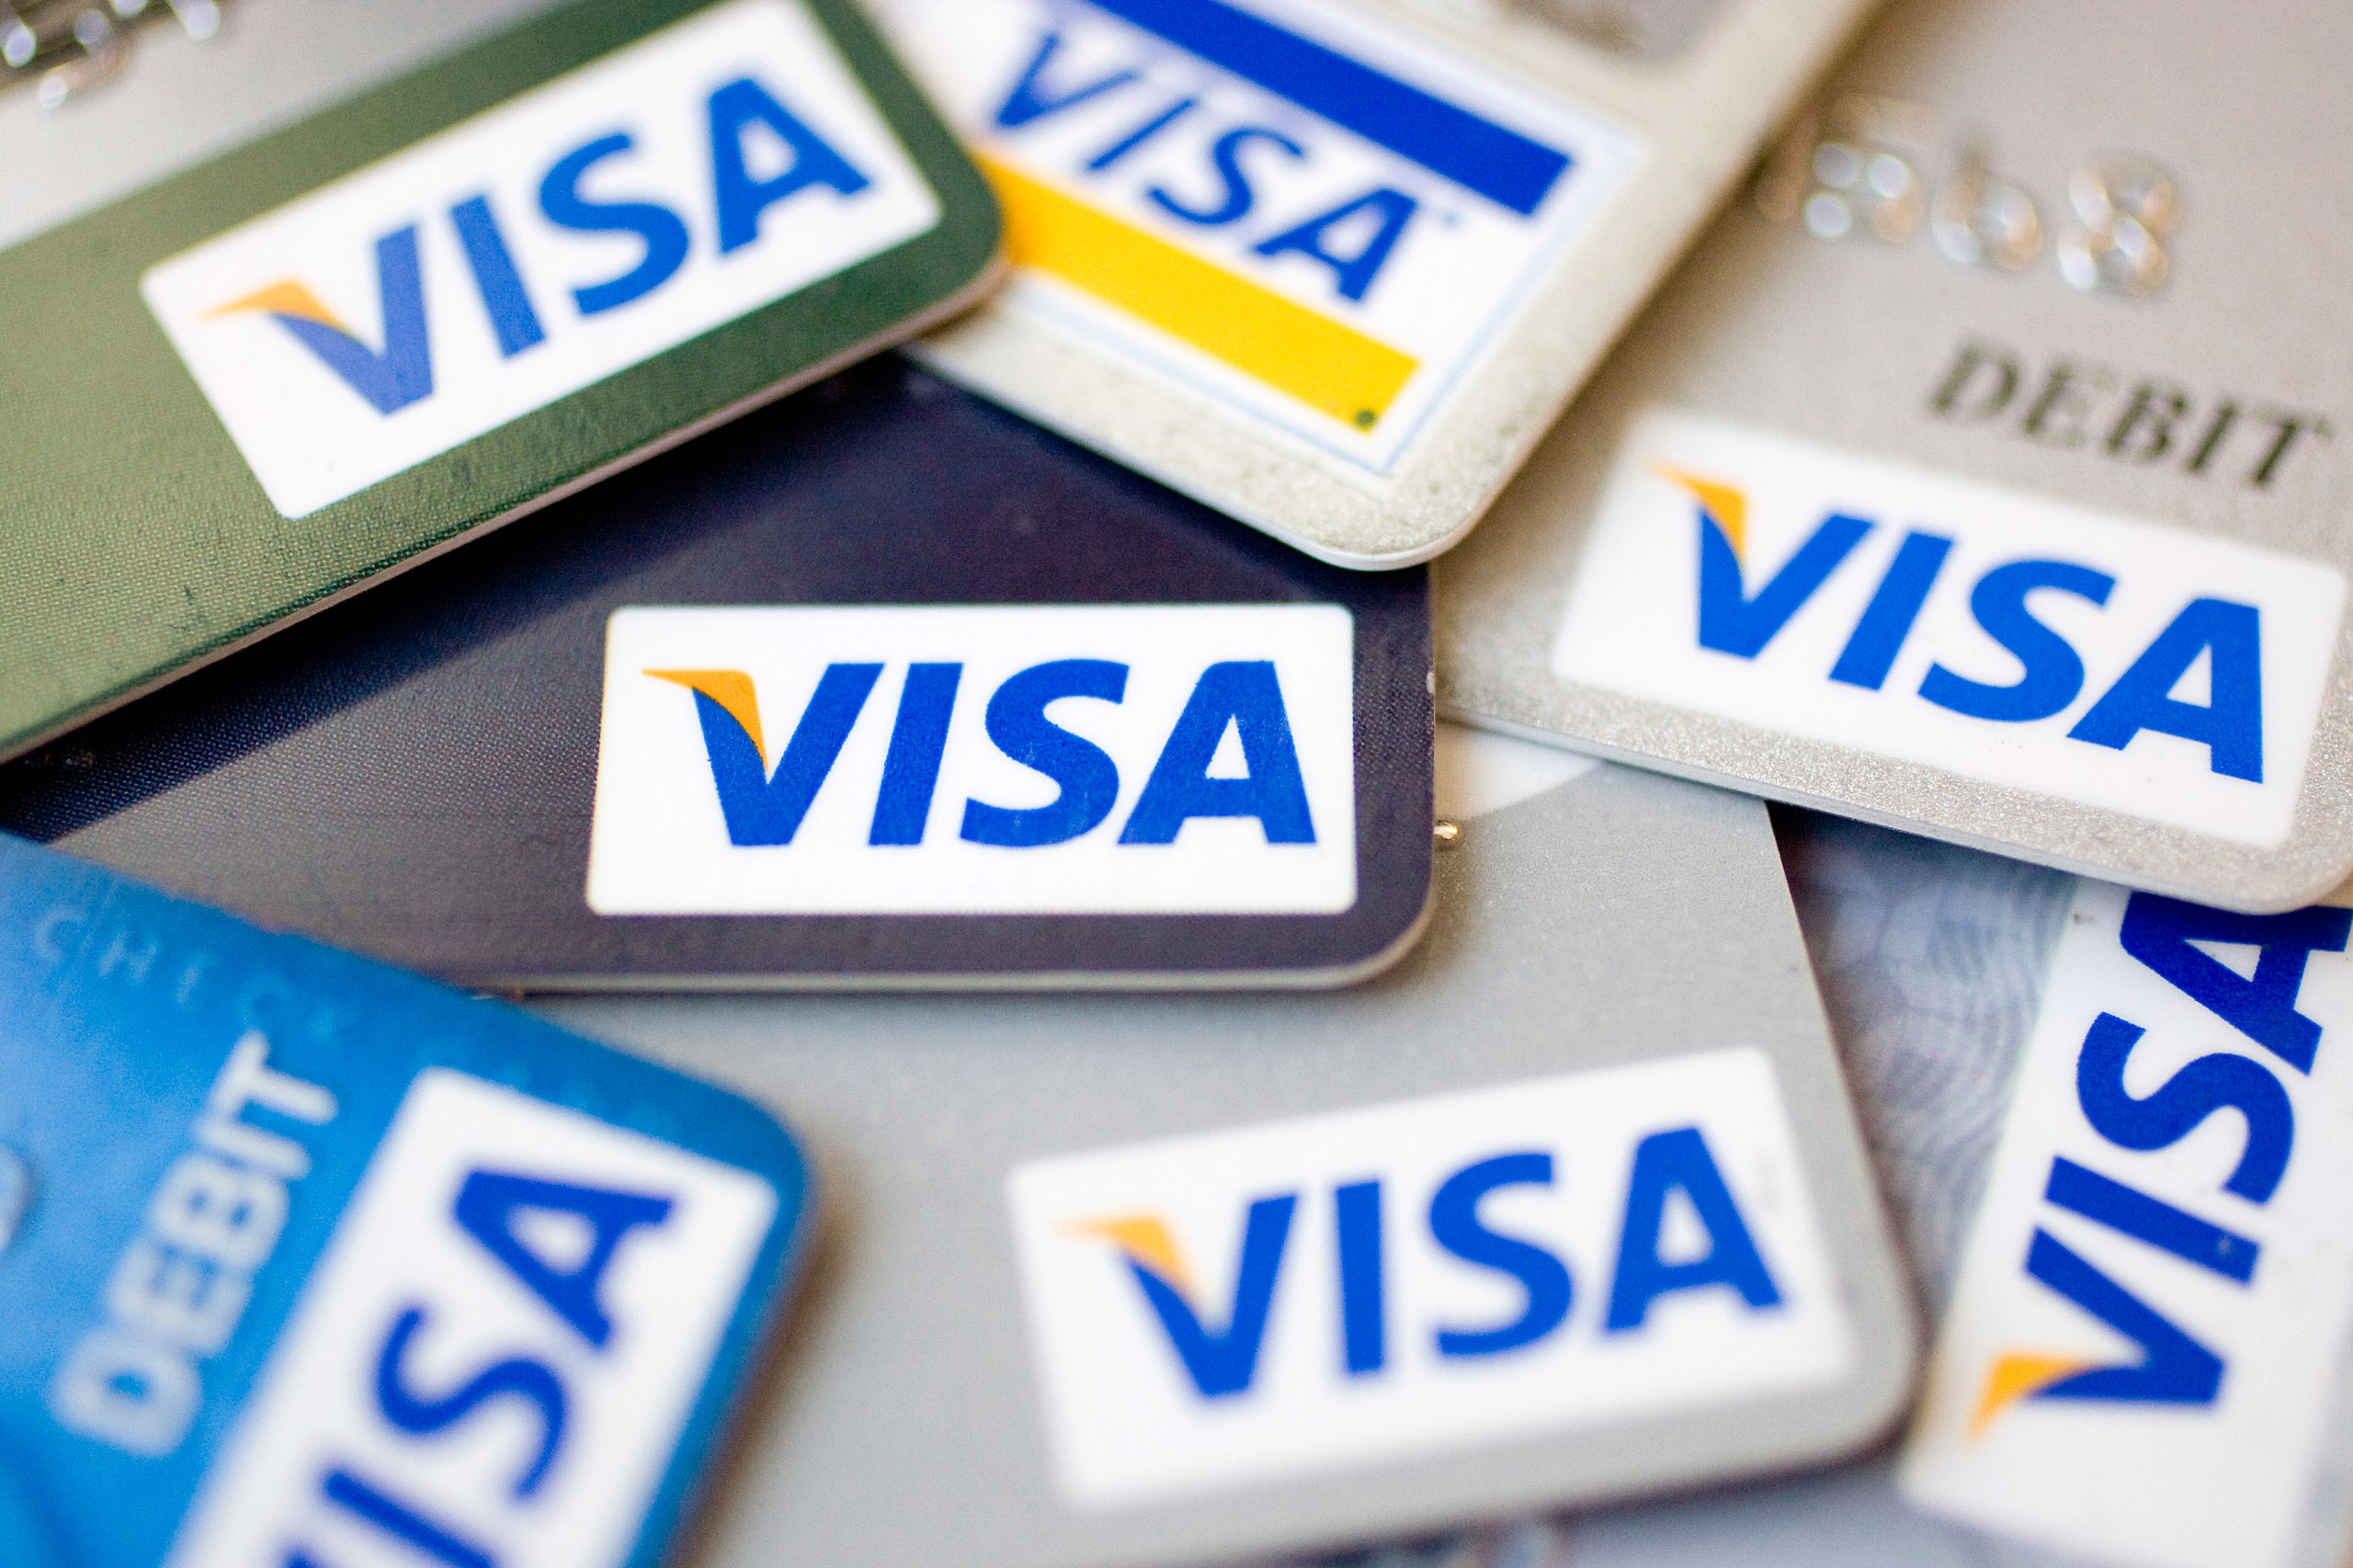 Visa logos appear on credit and debit cards in New York, on July 30, 2009.